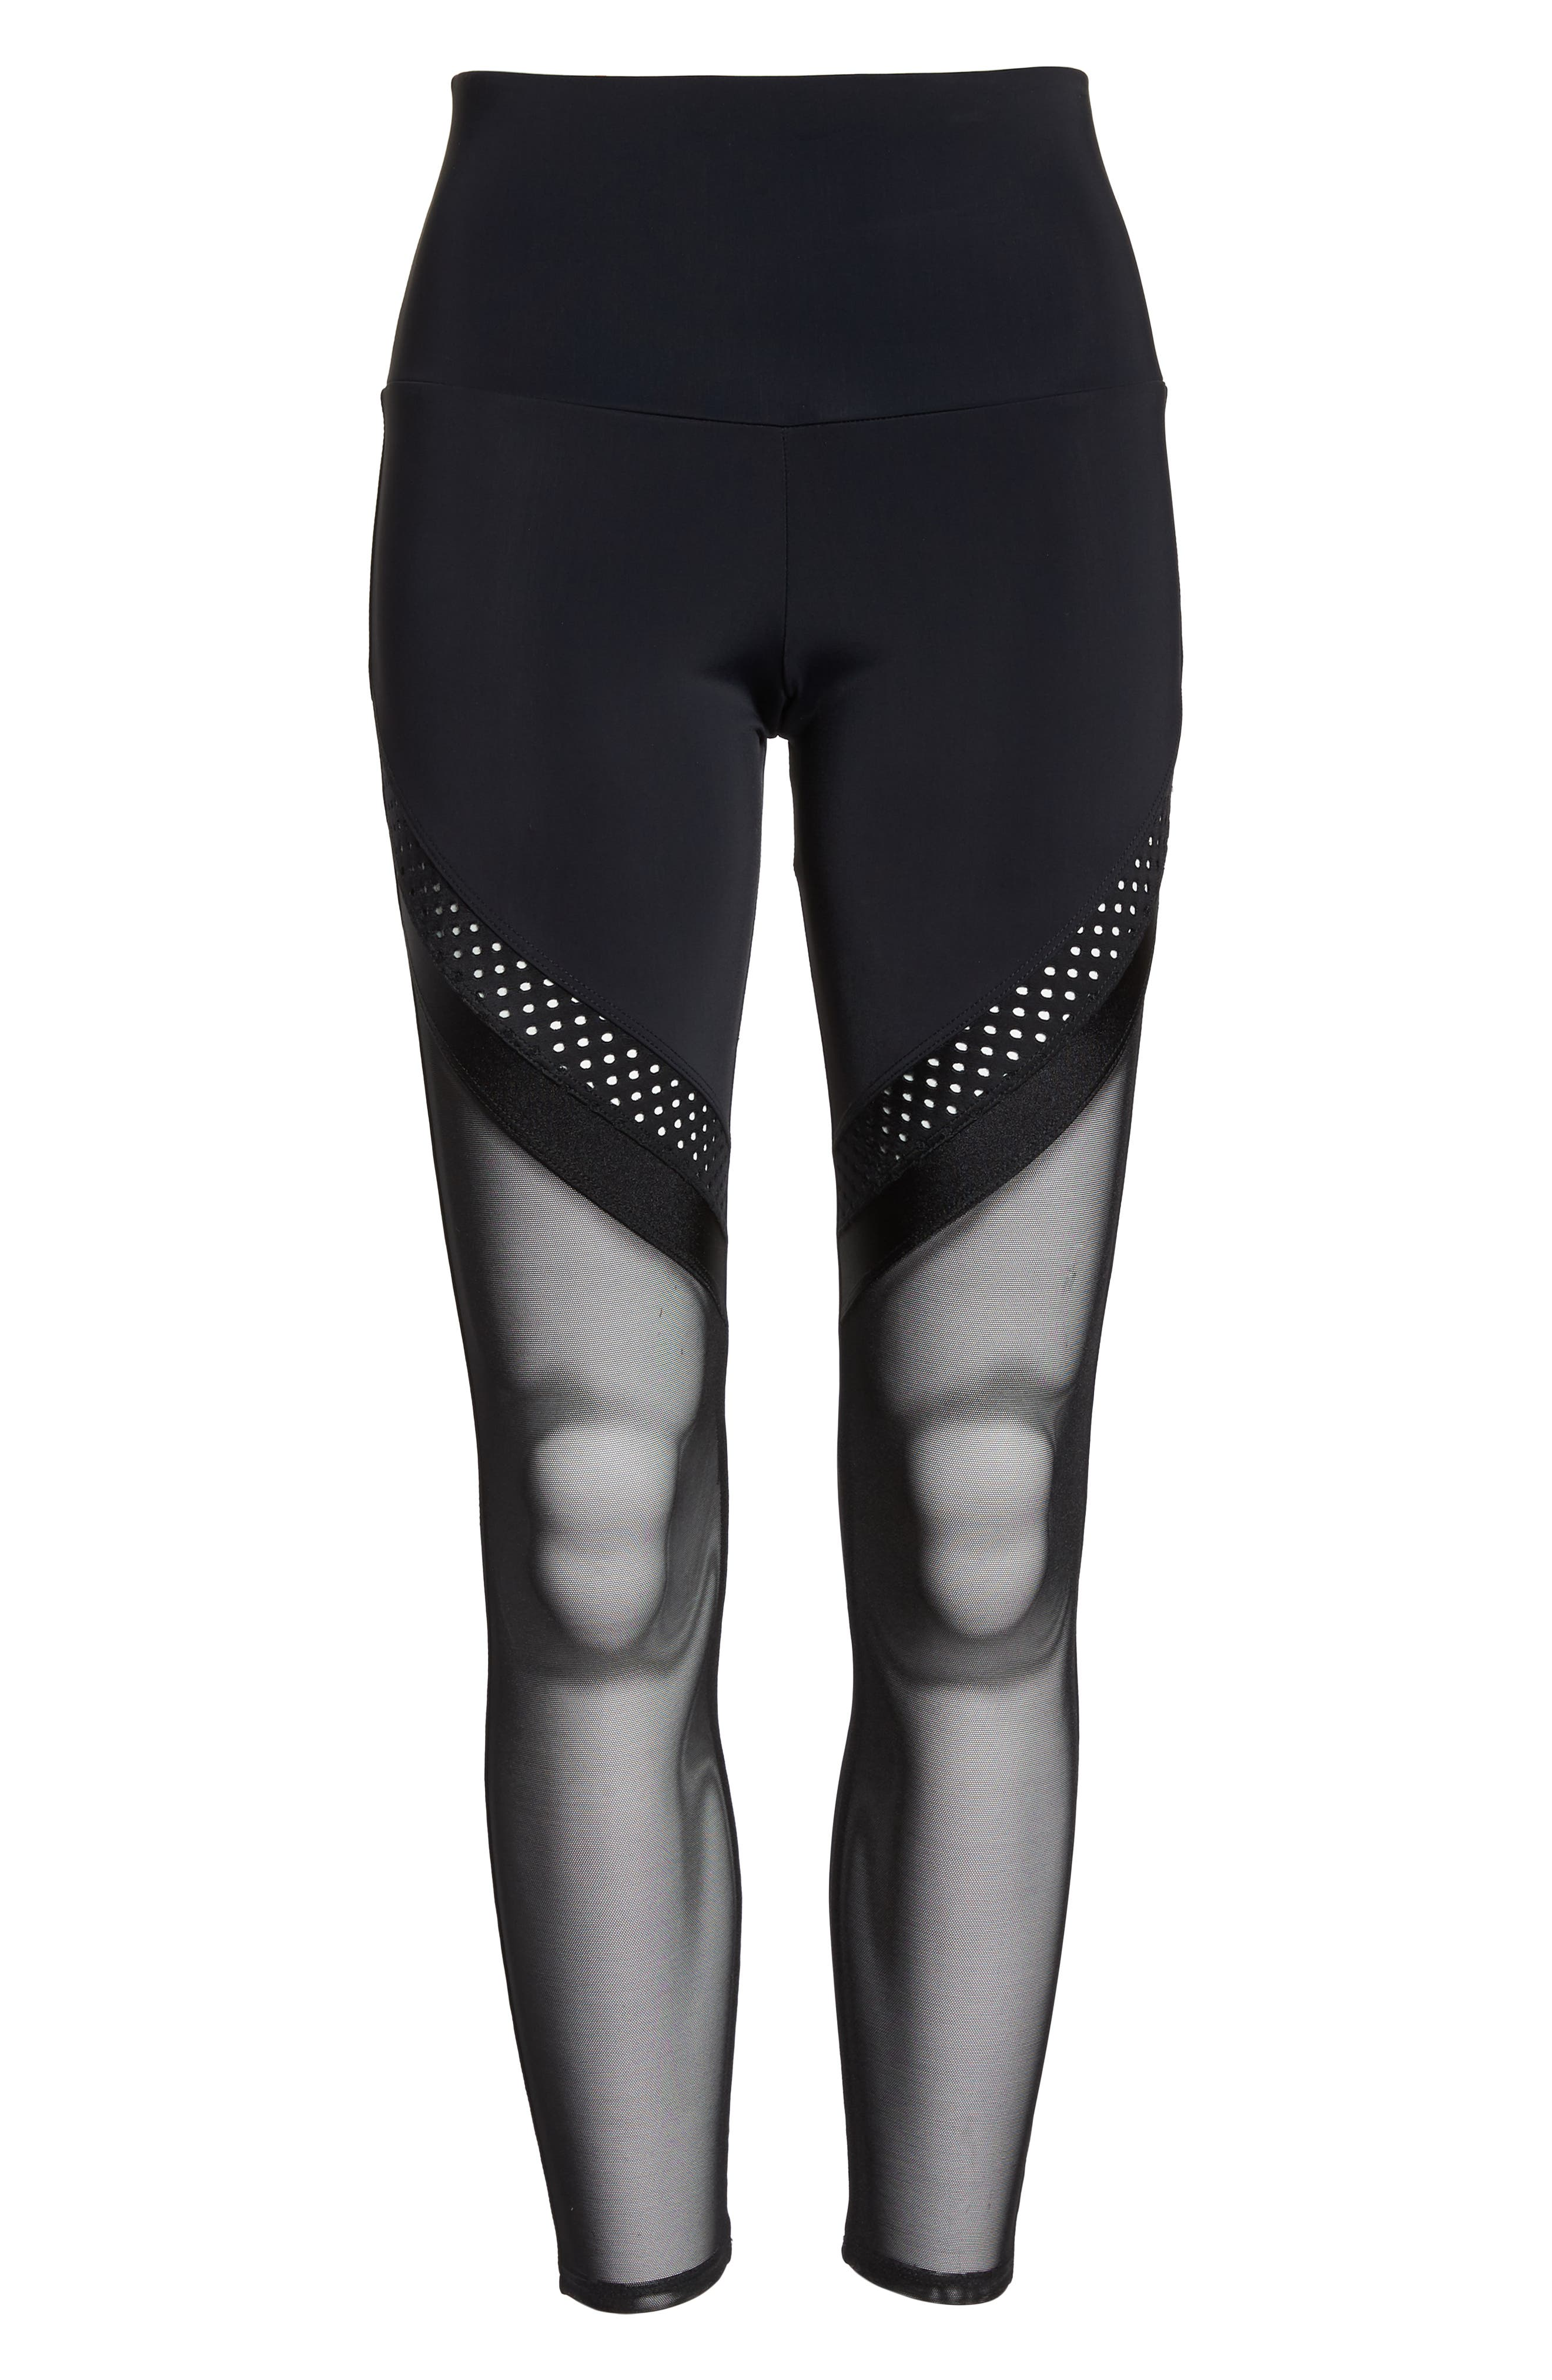 Chrome Leggings,                             Alternate thumbnail 7, color,                             Black